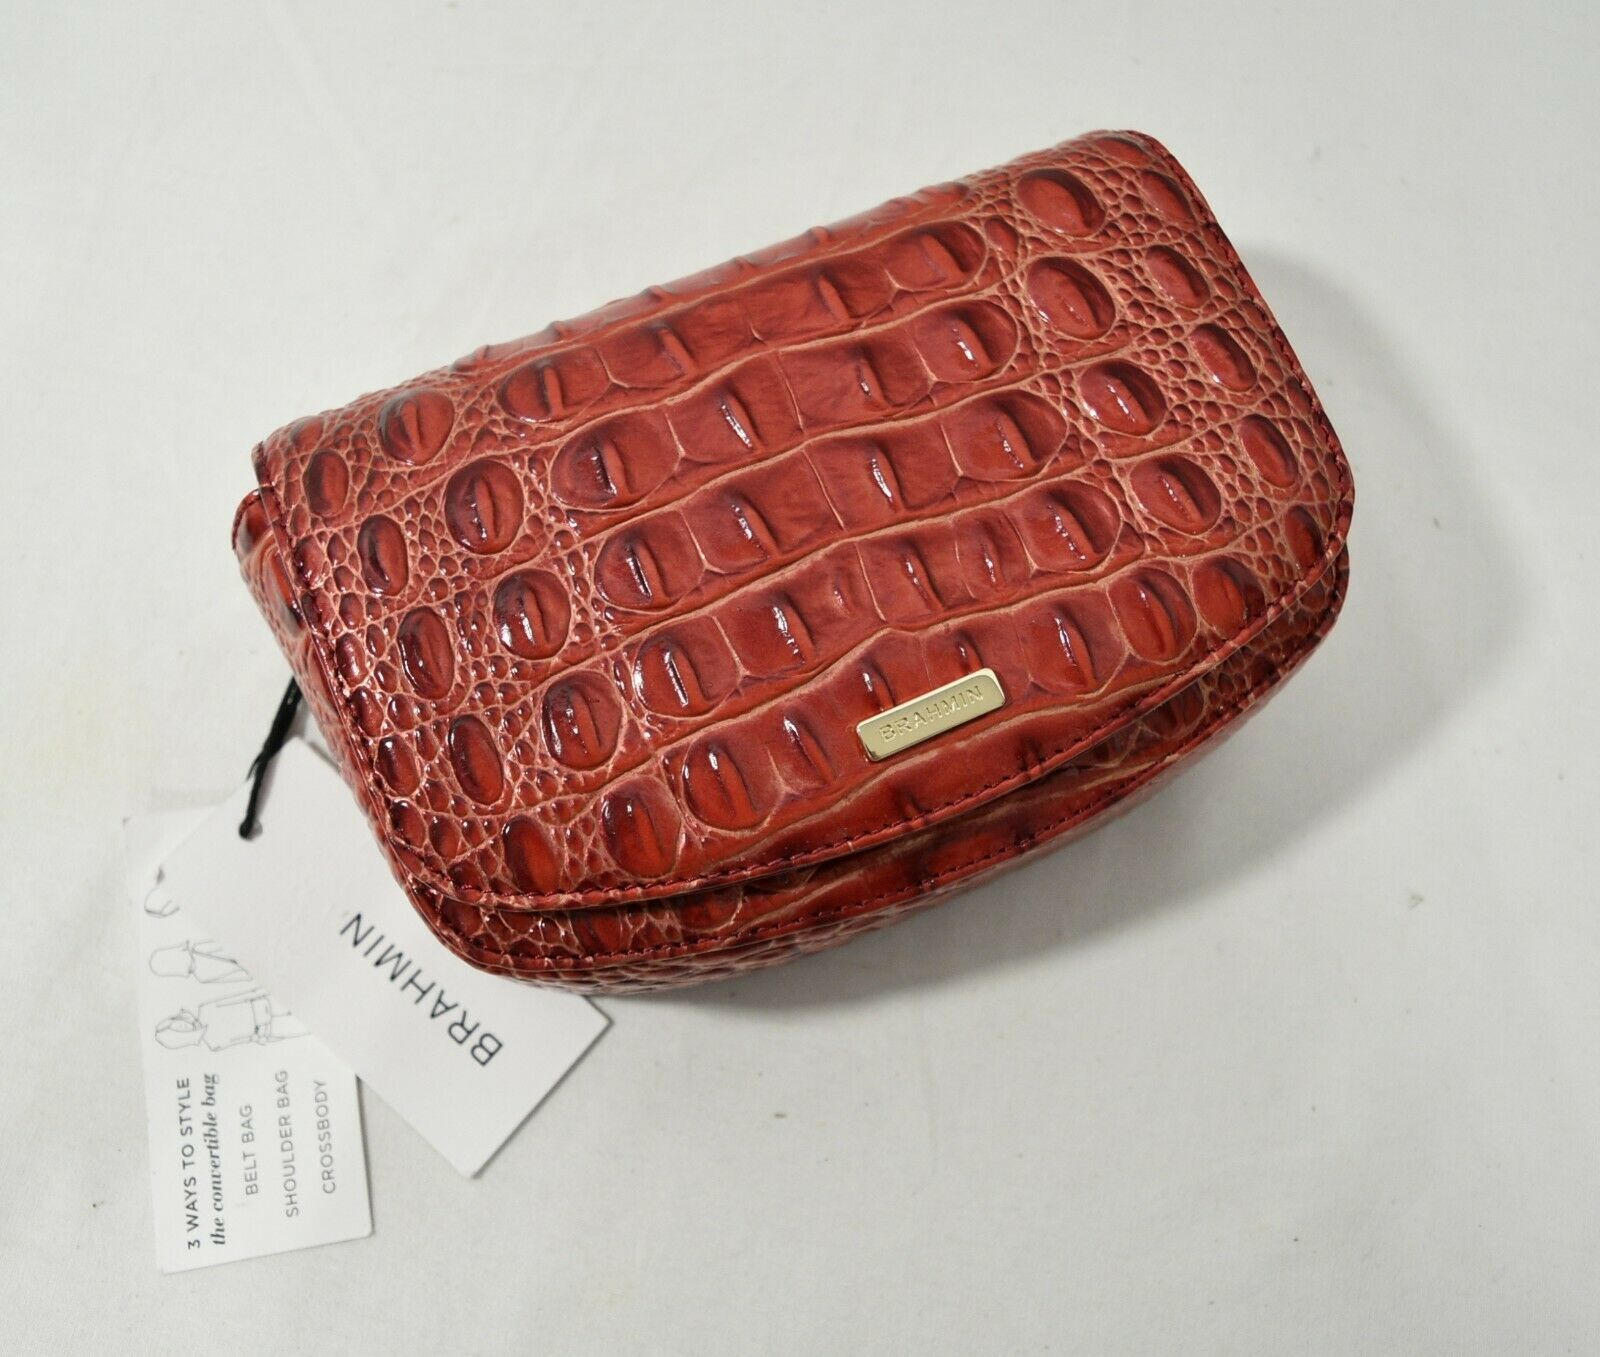 Primary image for NWT Brahmin Leather Lil Belt Bag/Shoulder Bag / Crossbody Bag Lava Melbourne